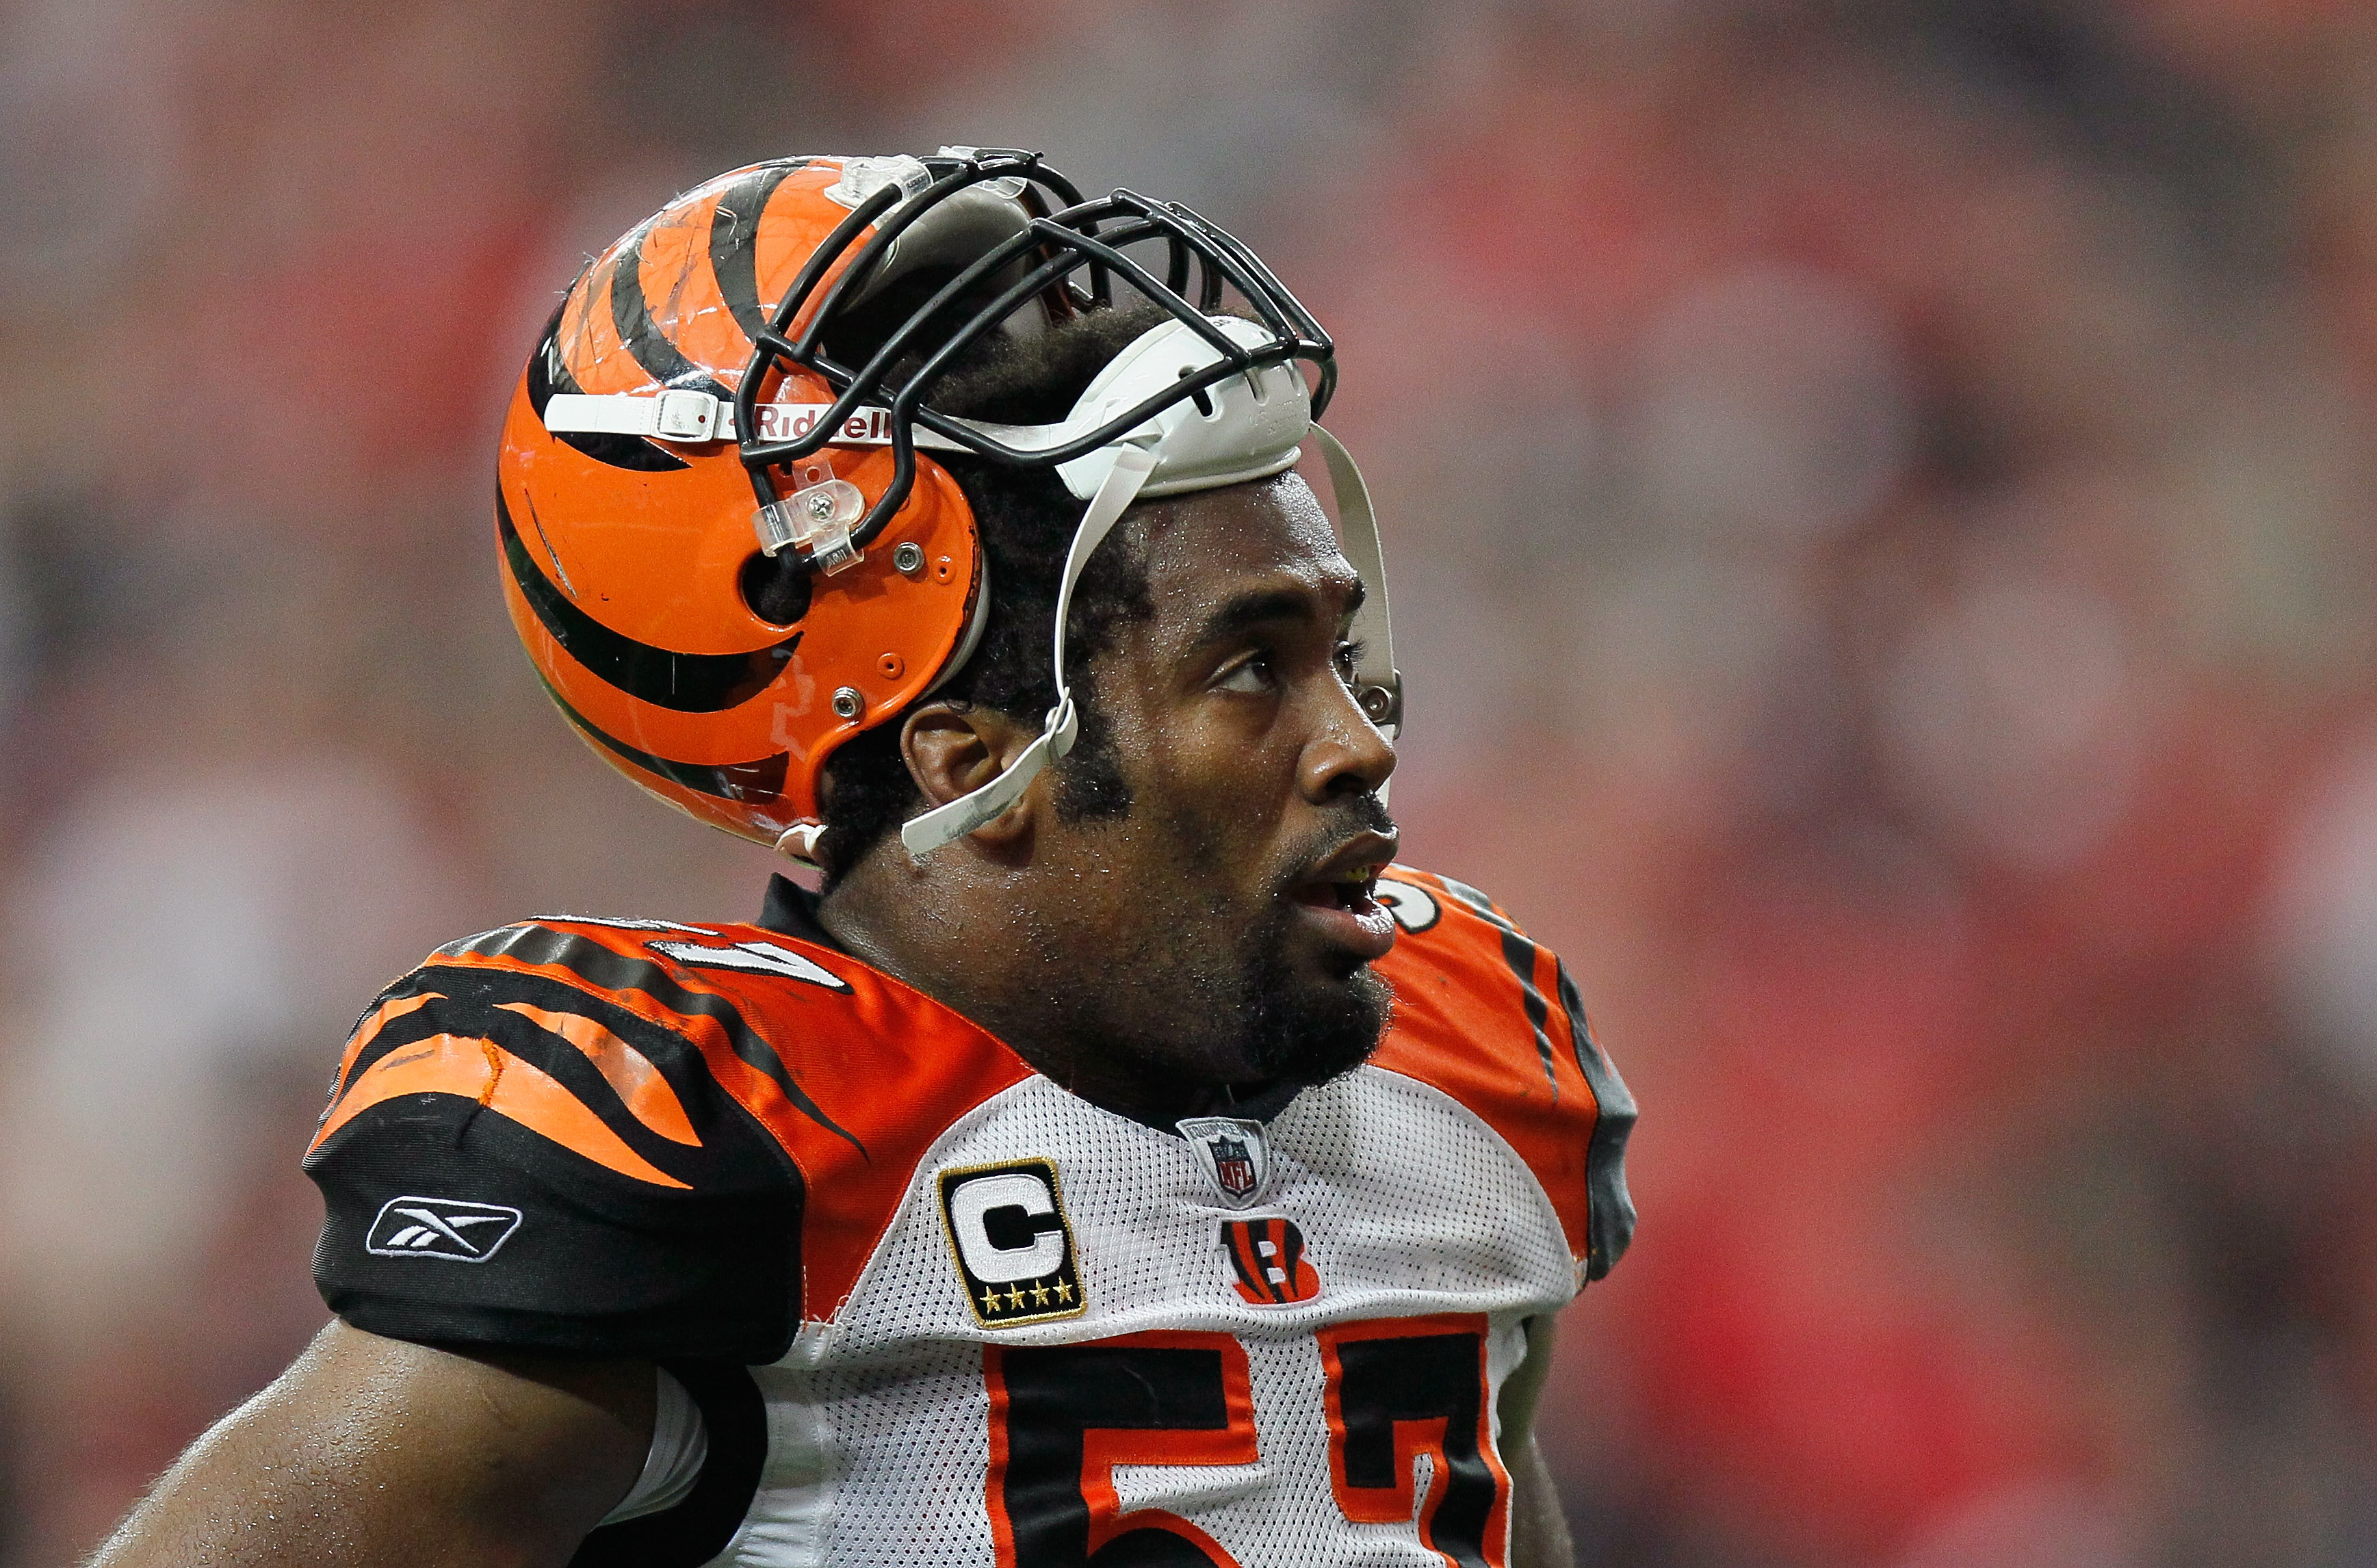 ATLANTA - OCTOBER 24:  Dhani Jones #57 of the Cincinnati Bengals against the Atlanta Falcons at Georgia Dome on October 24, 2010 in Atlanta, Georgia.  (Photo by Kevin C. Cox/Getty Images)